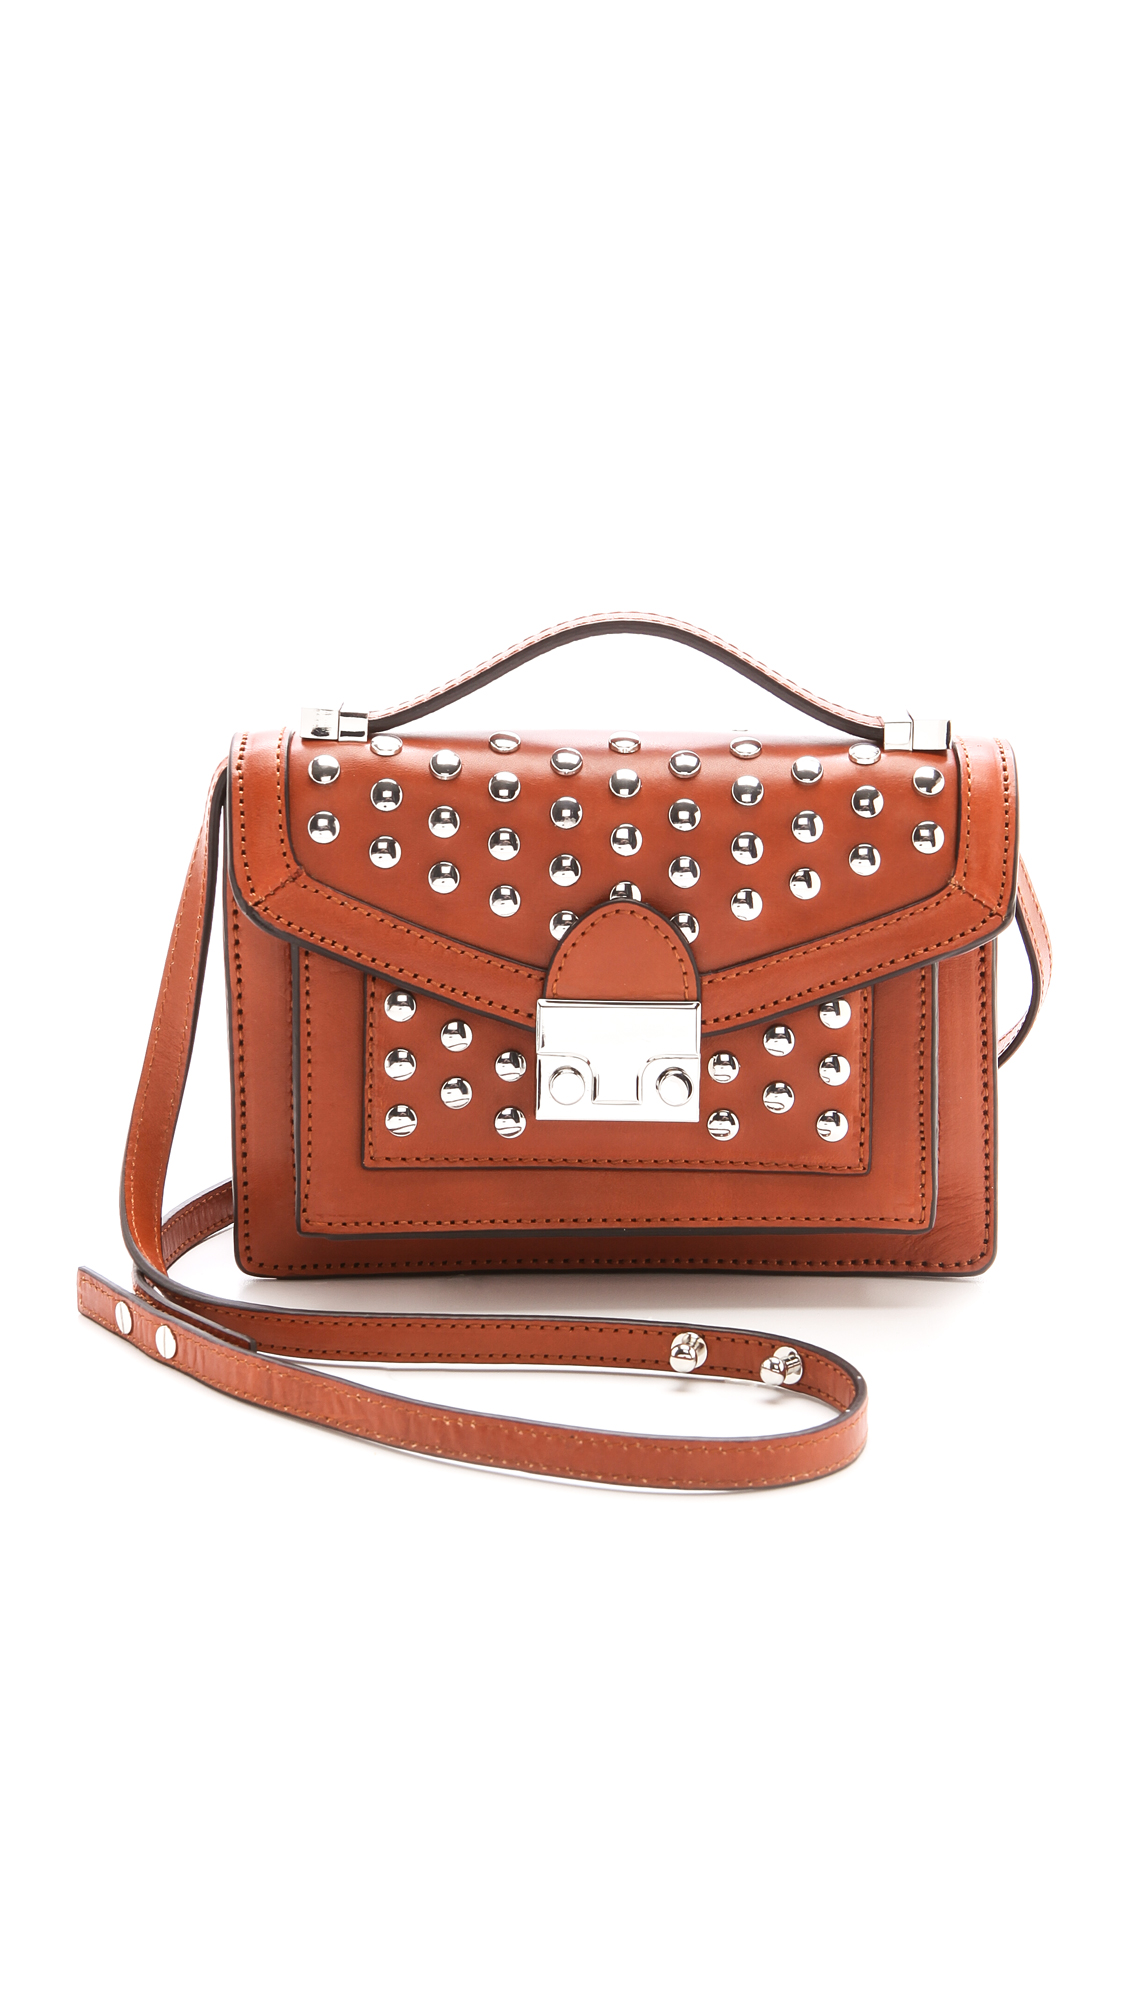 Loeffler Randall Studded Mini Bag